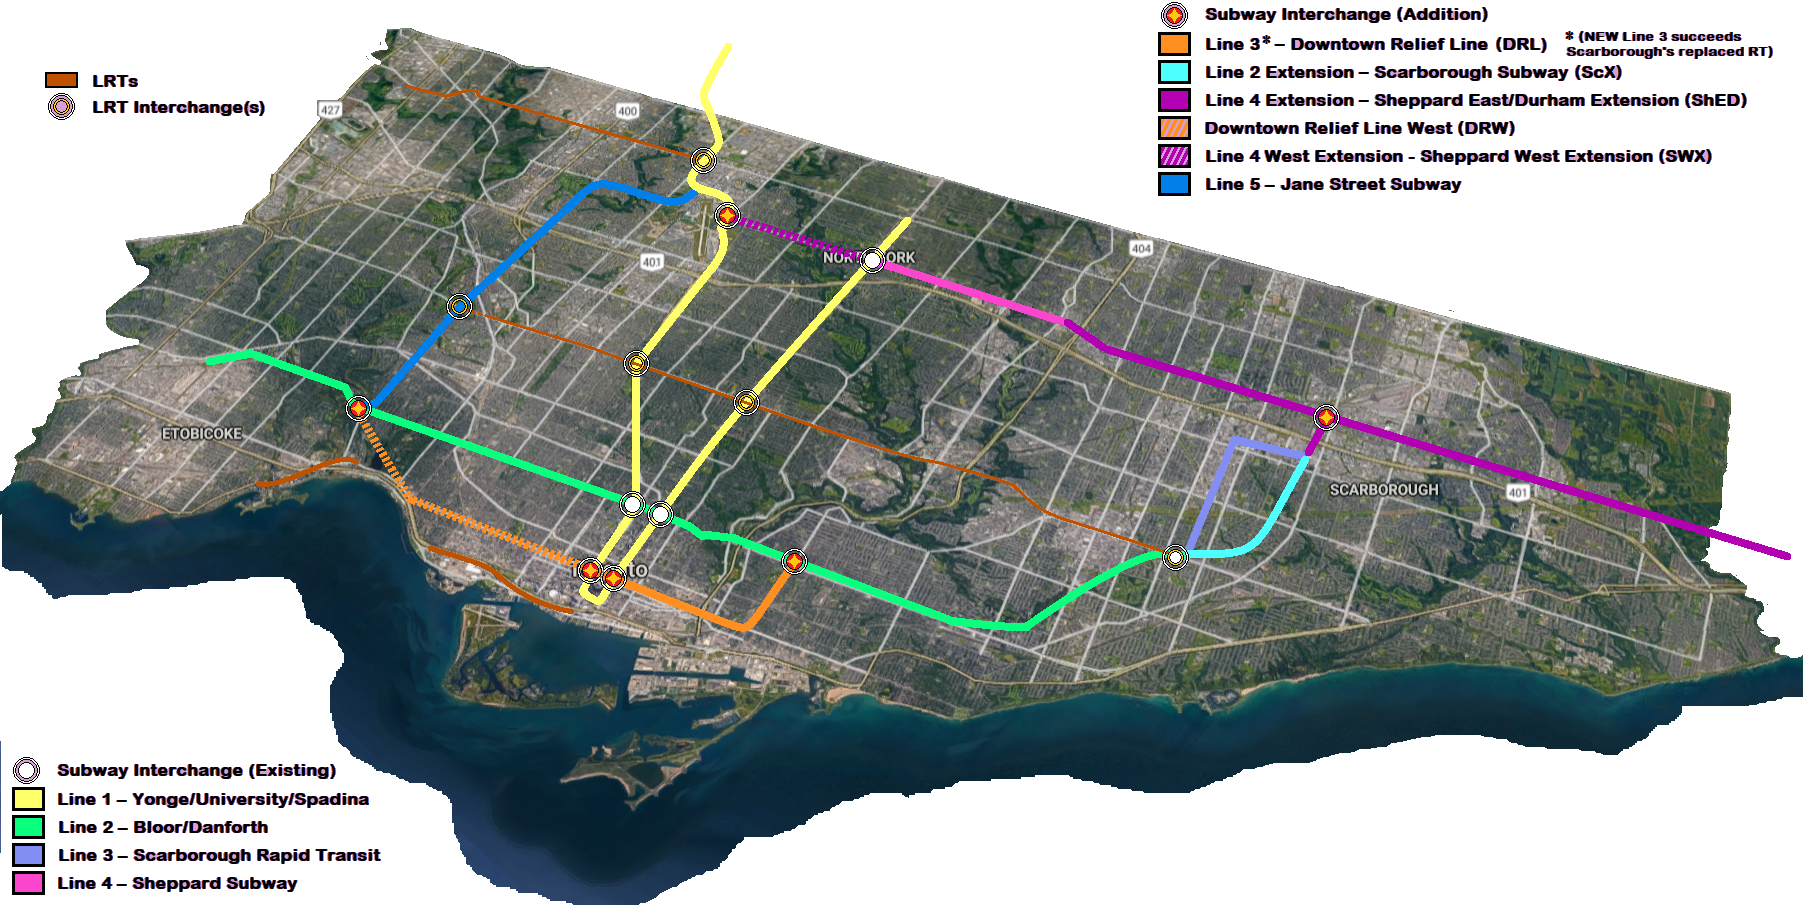 Langenfeld plan to expand subway infrastructure reflective of our world class city status